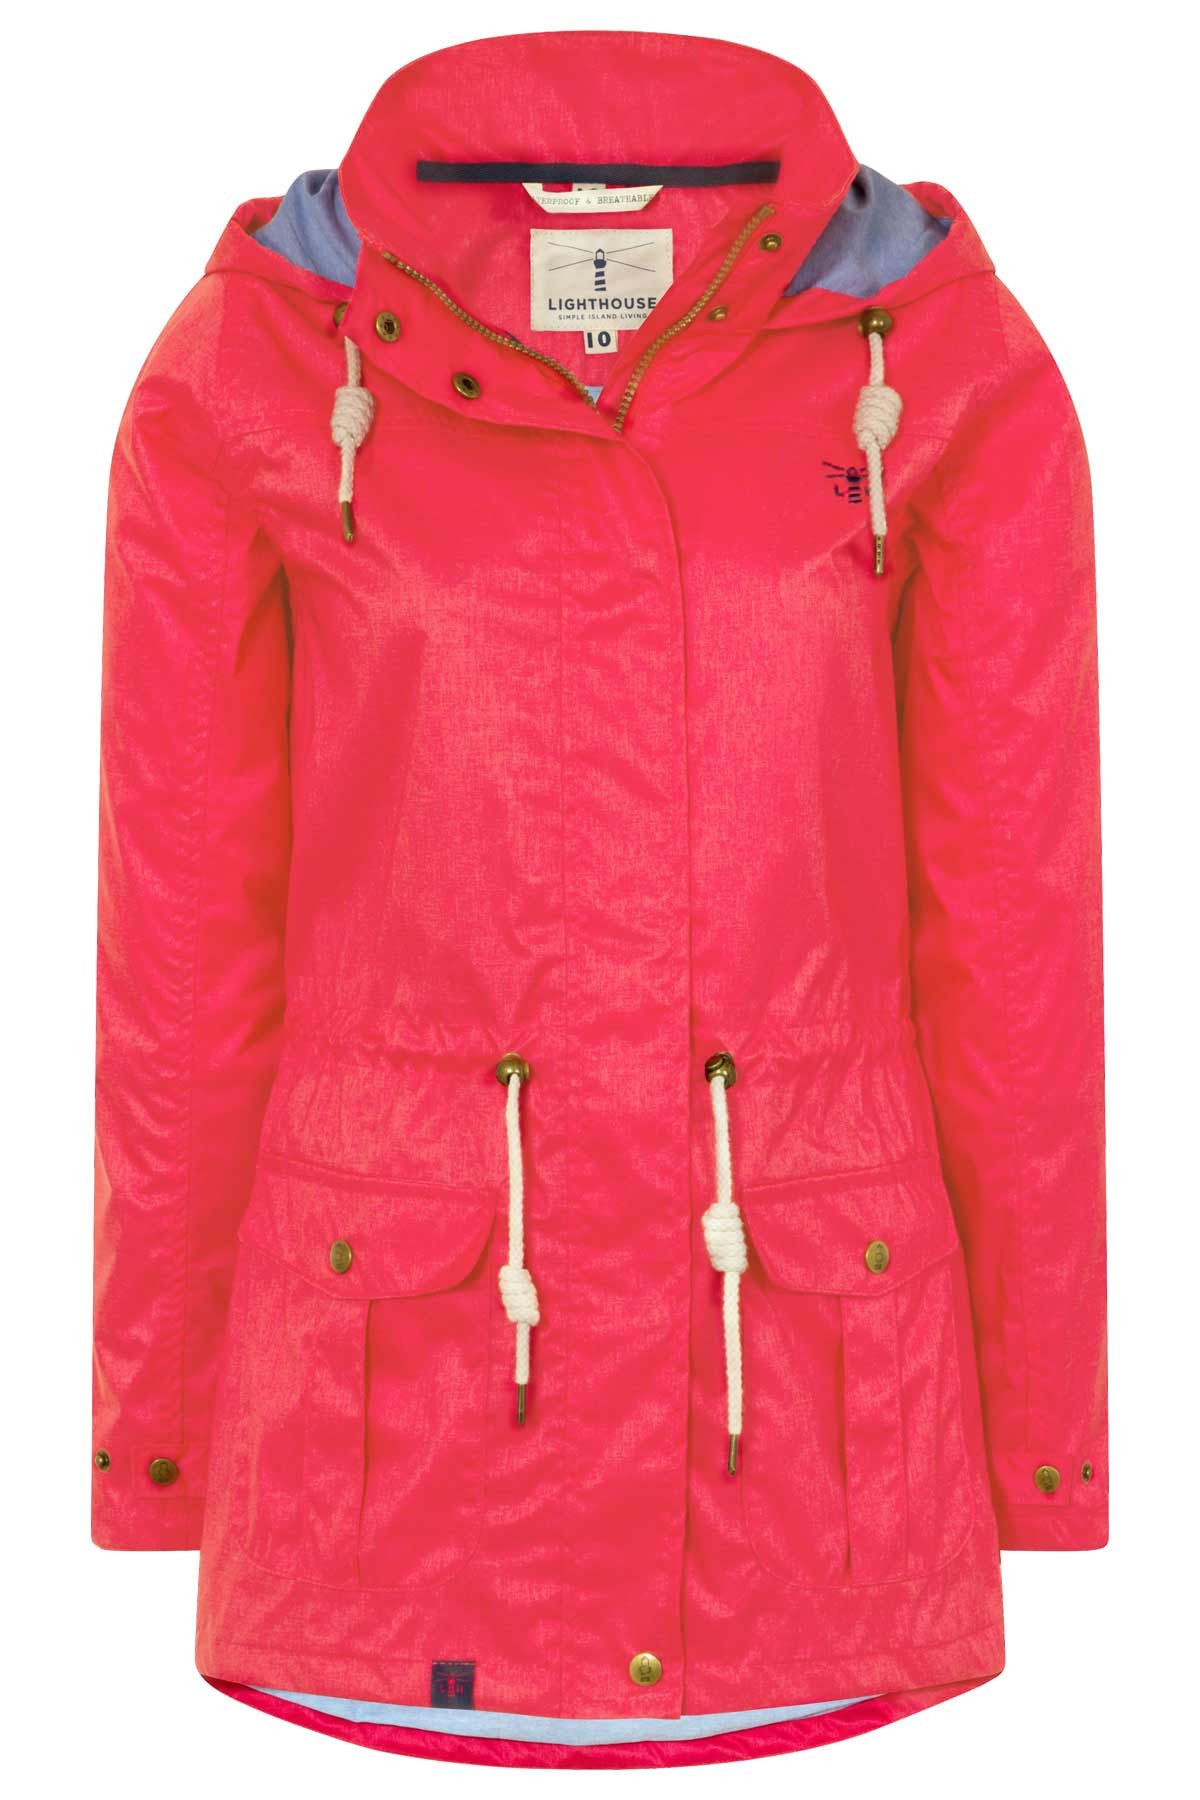 Lighthouse Fearn Womens Waterproof Raincoat in Red ... 31192f3b62